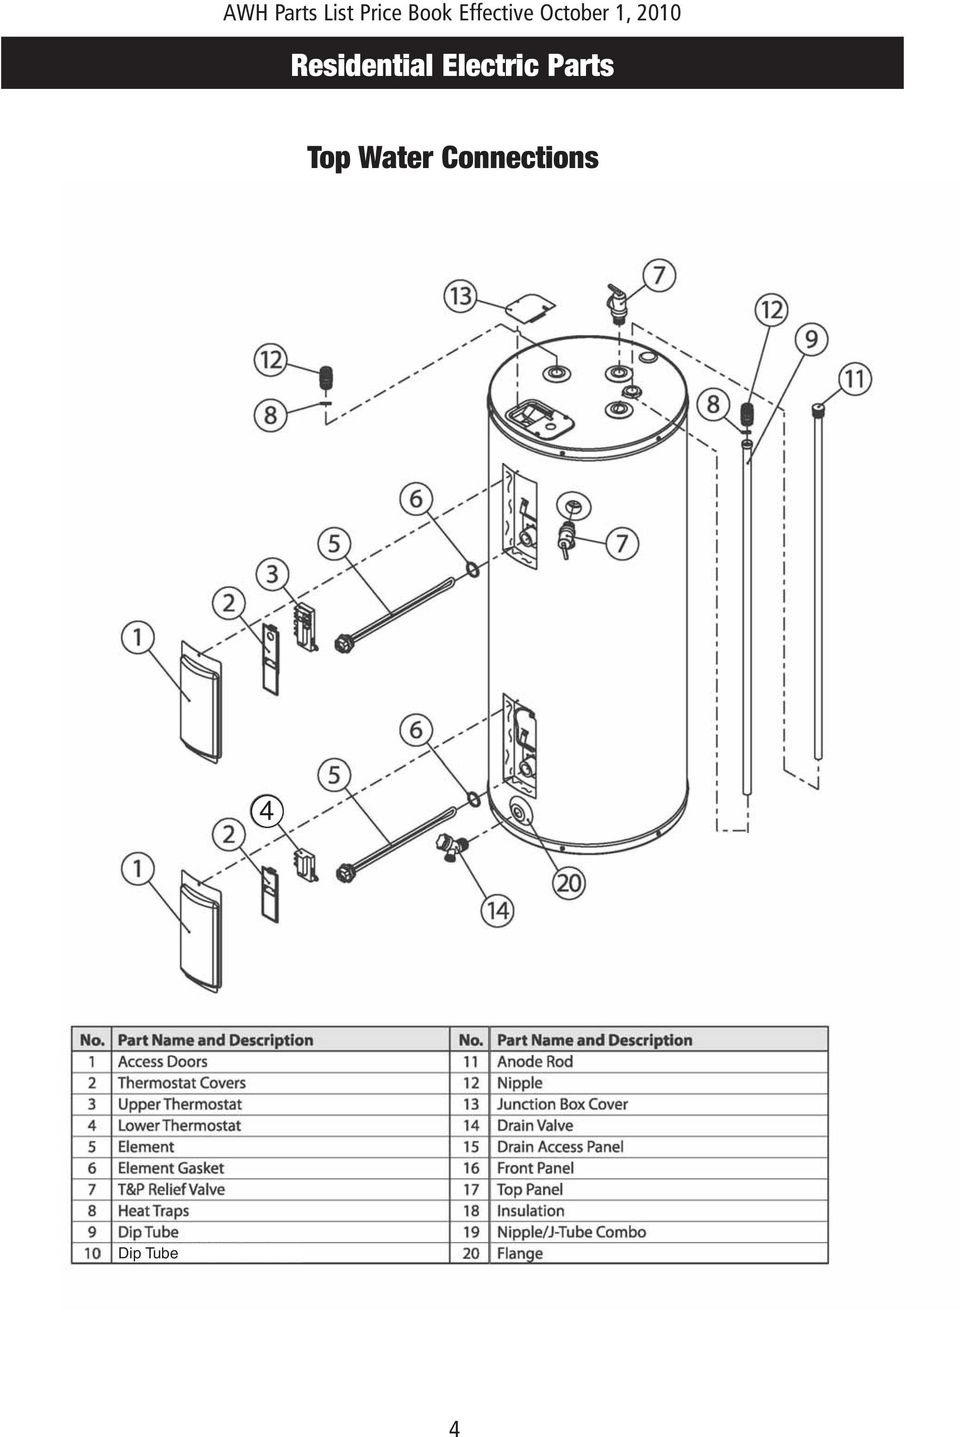 7 Aluminum AWH Parts Price Book Effective October 1, 2010 Anode Rods Part  Kit Price Description Number Number Each Aluminum 5/8 x $ Aluminum 5/8 x  Aluminum ...